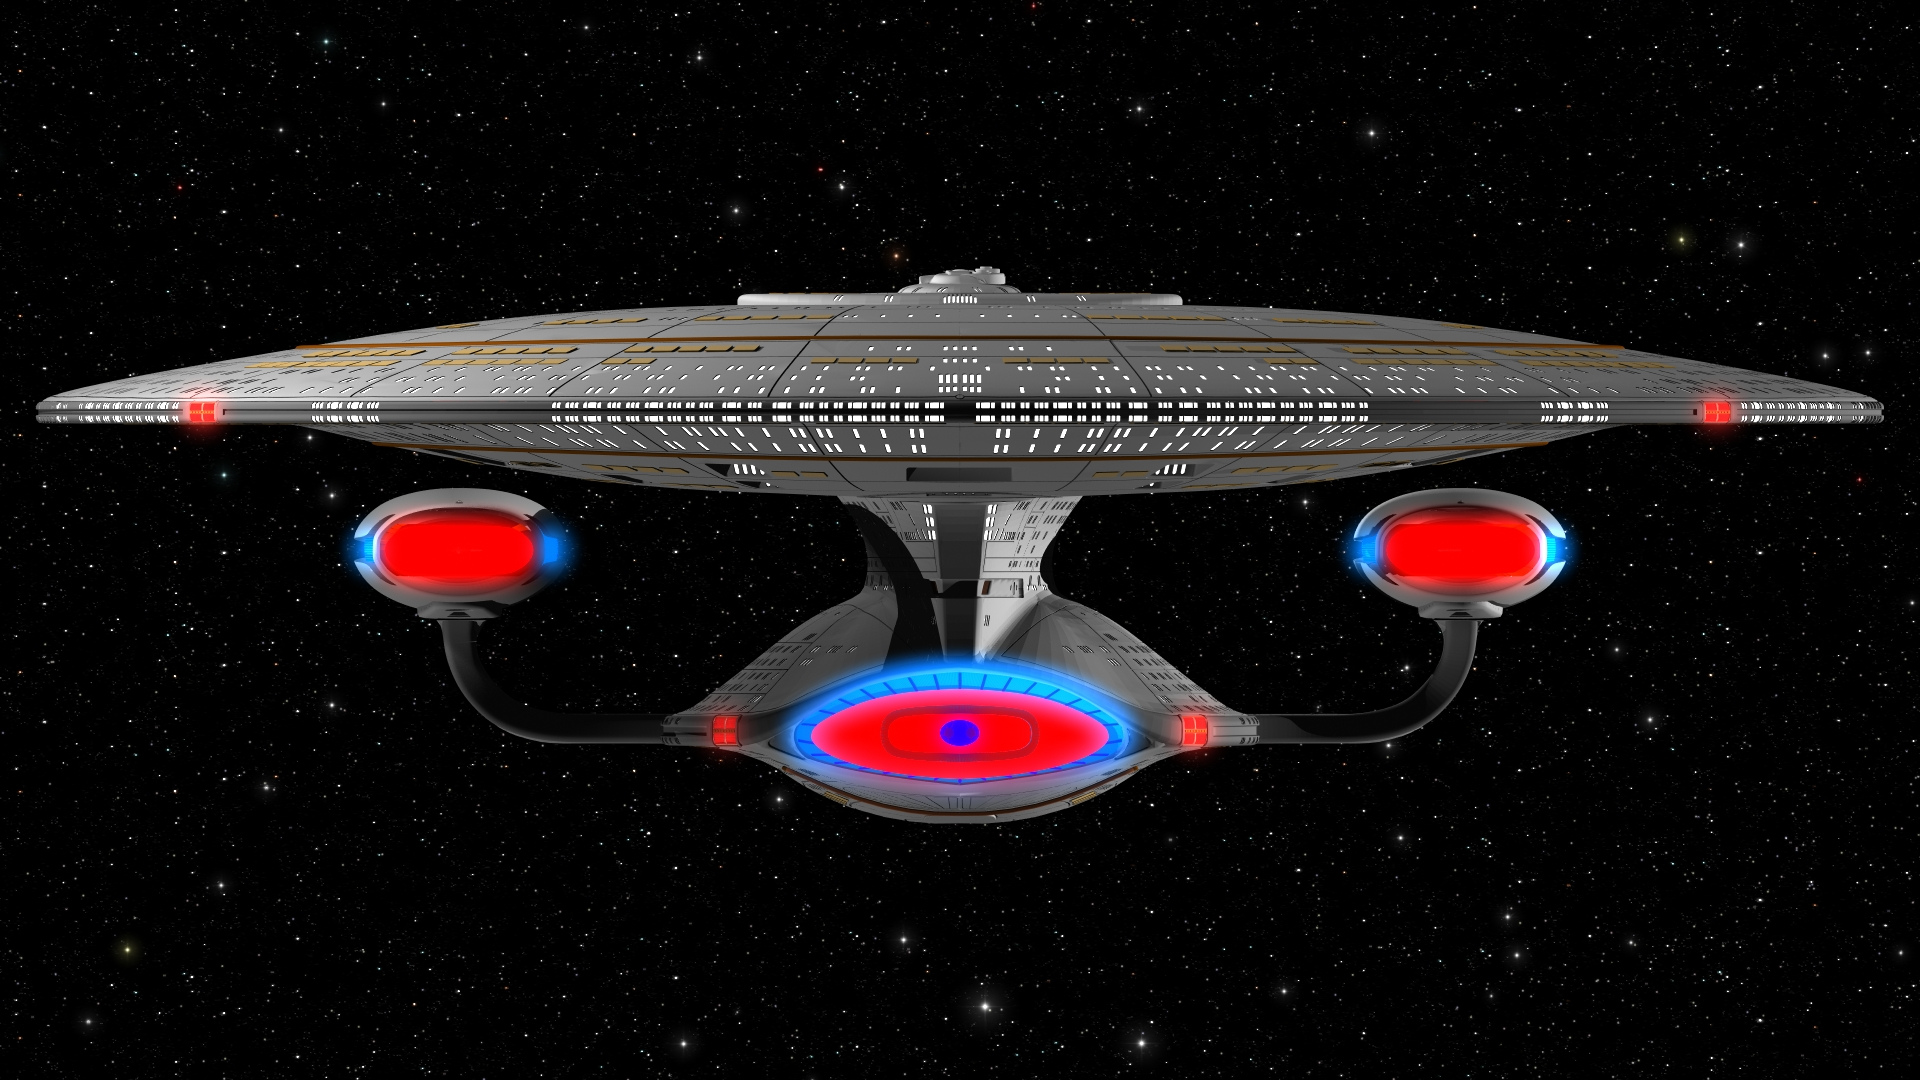 Enterprise high progress enterprised renders star trek higher